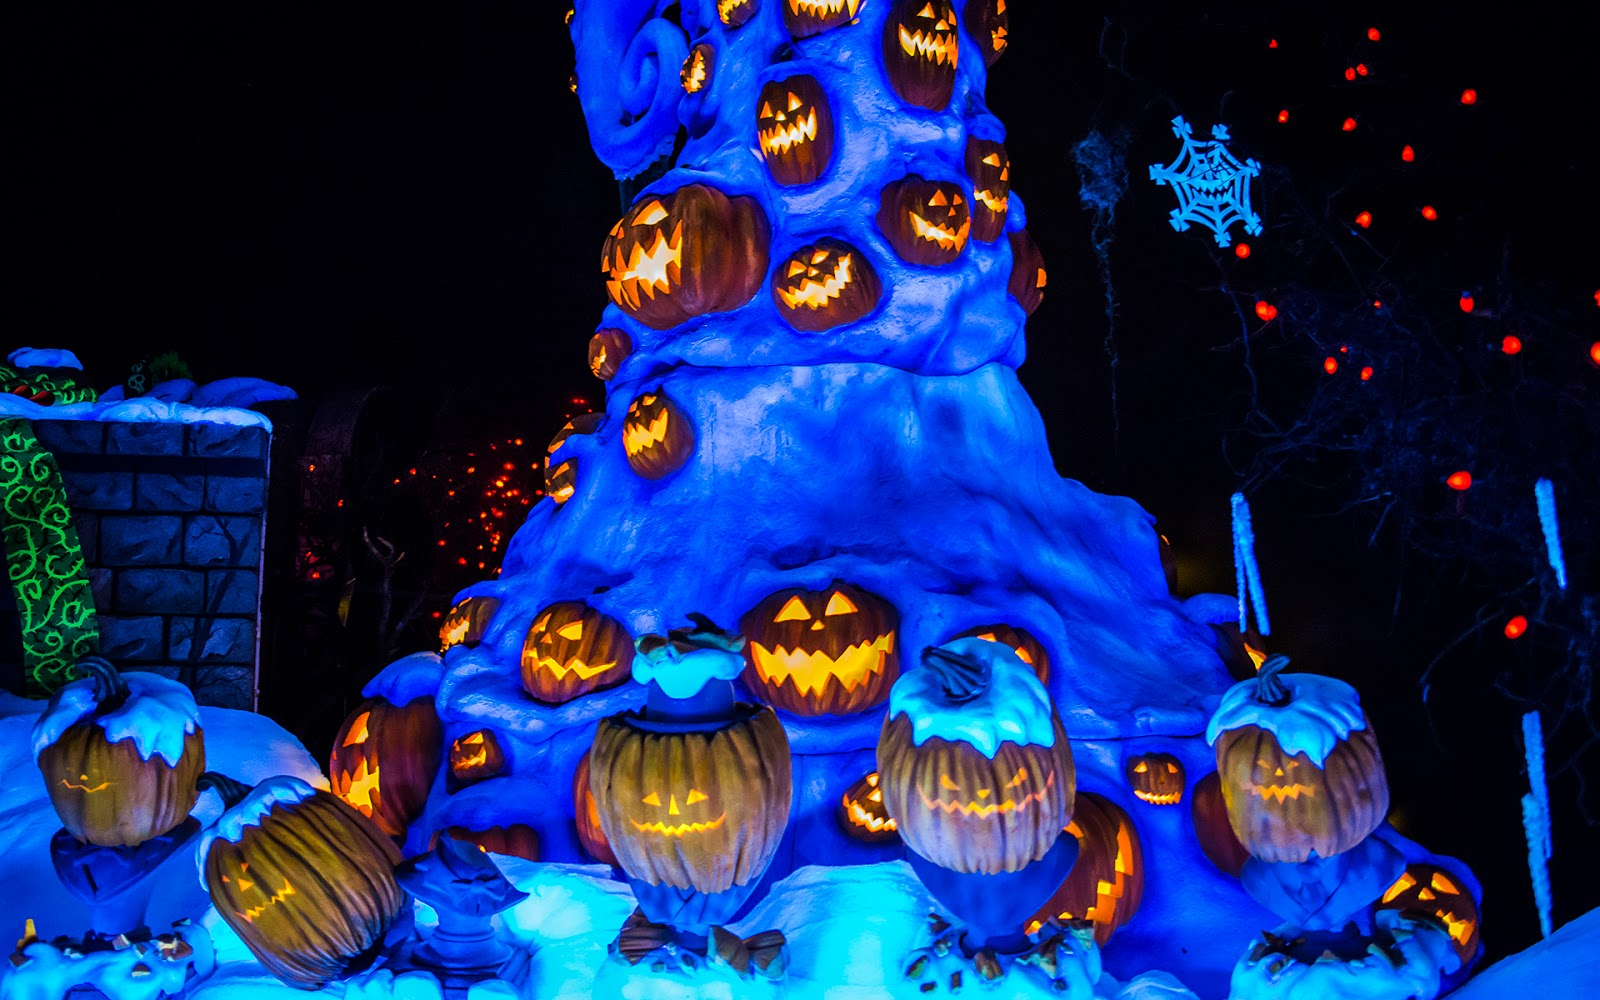 A Halloween Christmas Tree In The Graveyard